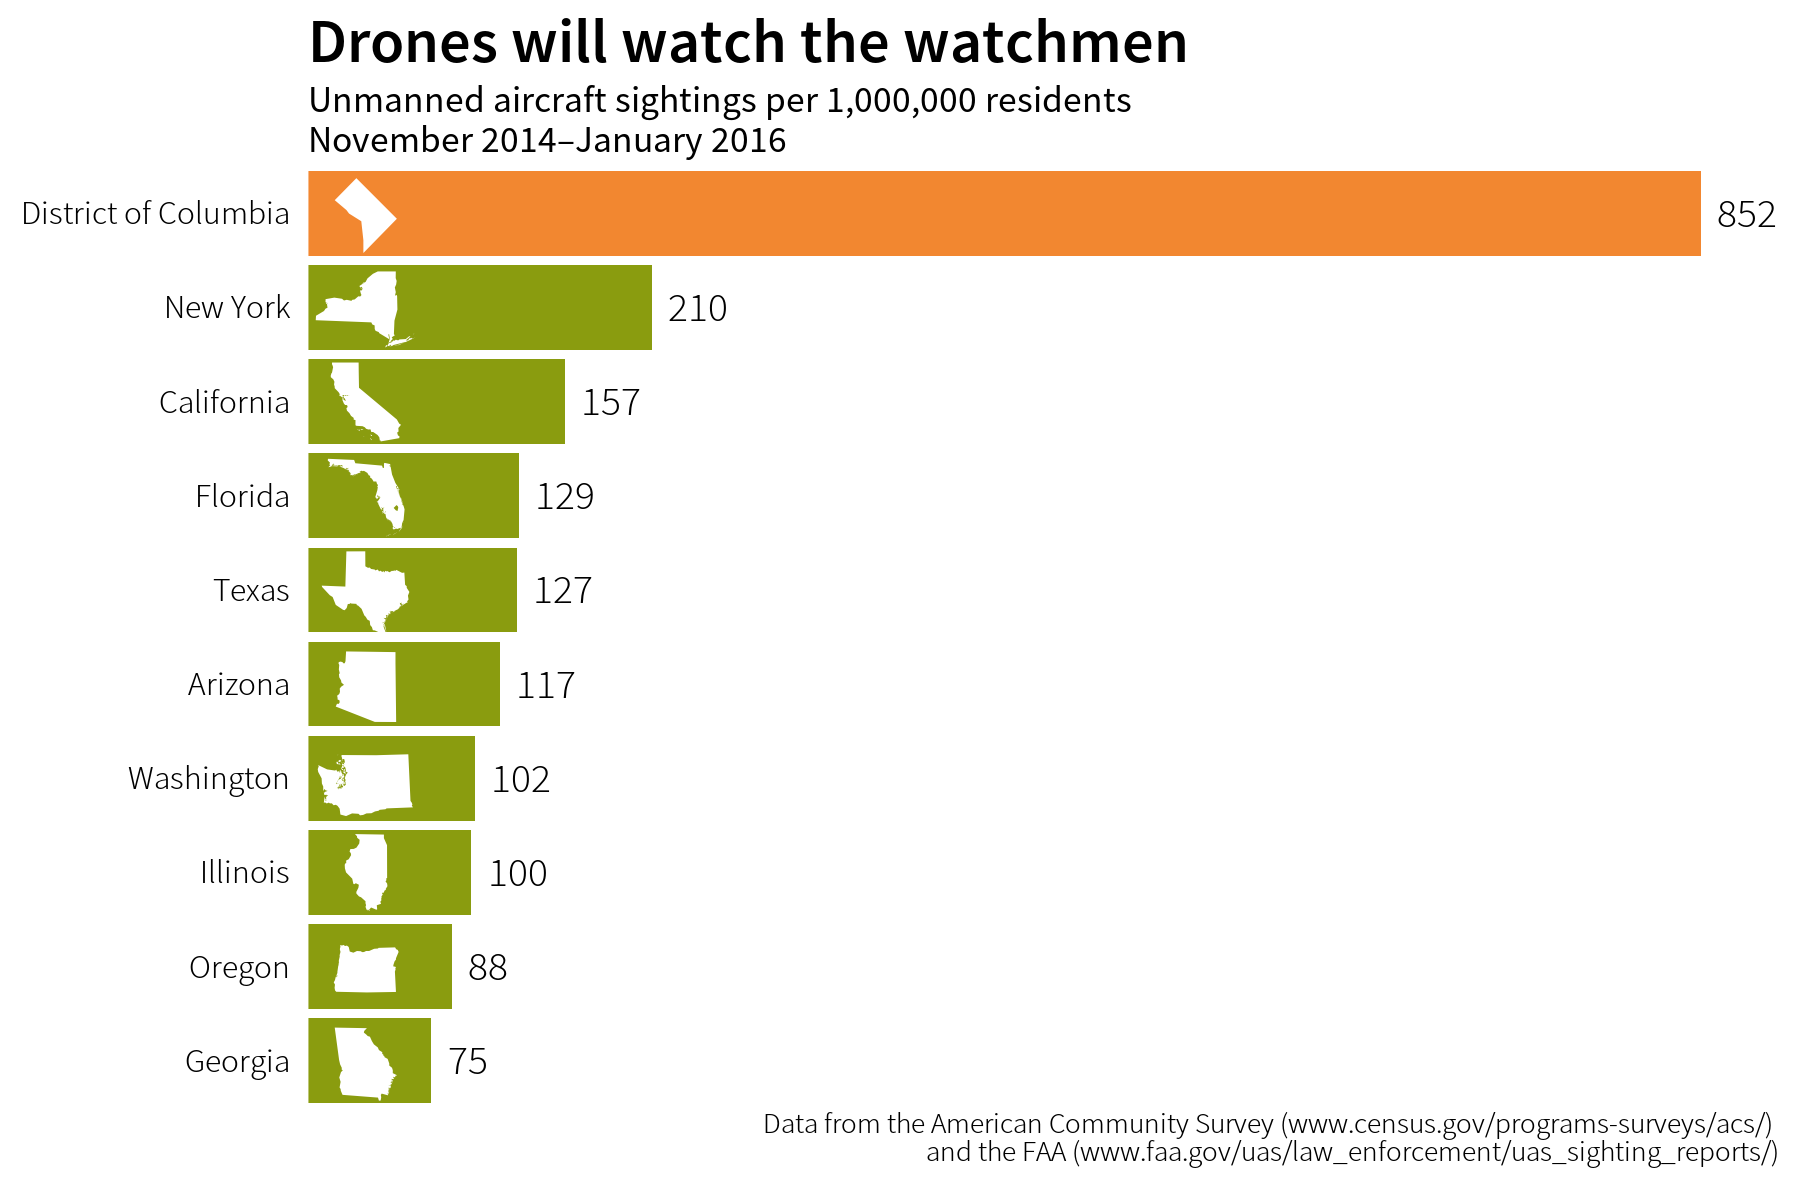 Drone sightings per capita